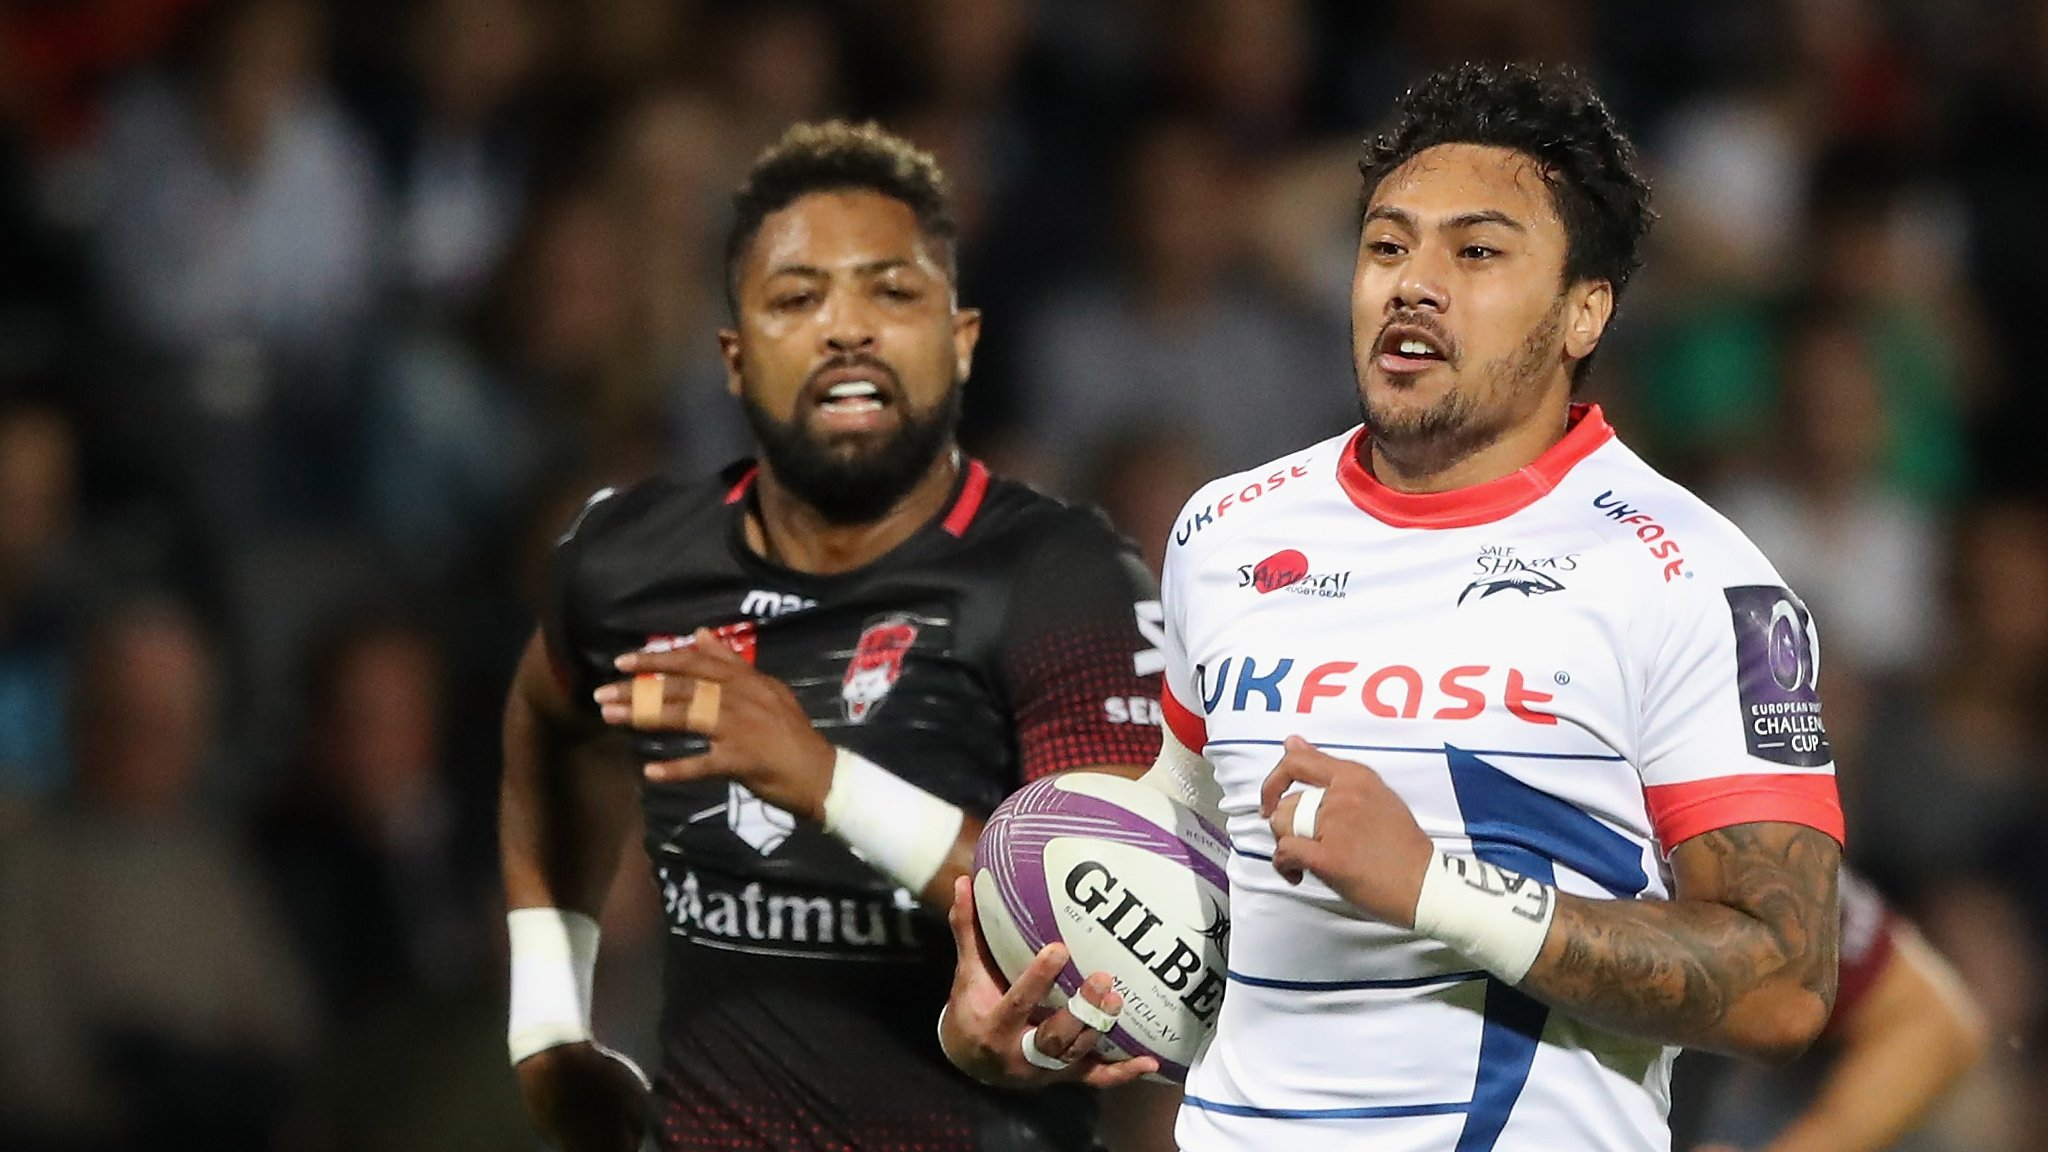 Sale squander 14-point lead to lose at Lyon